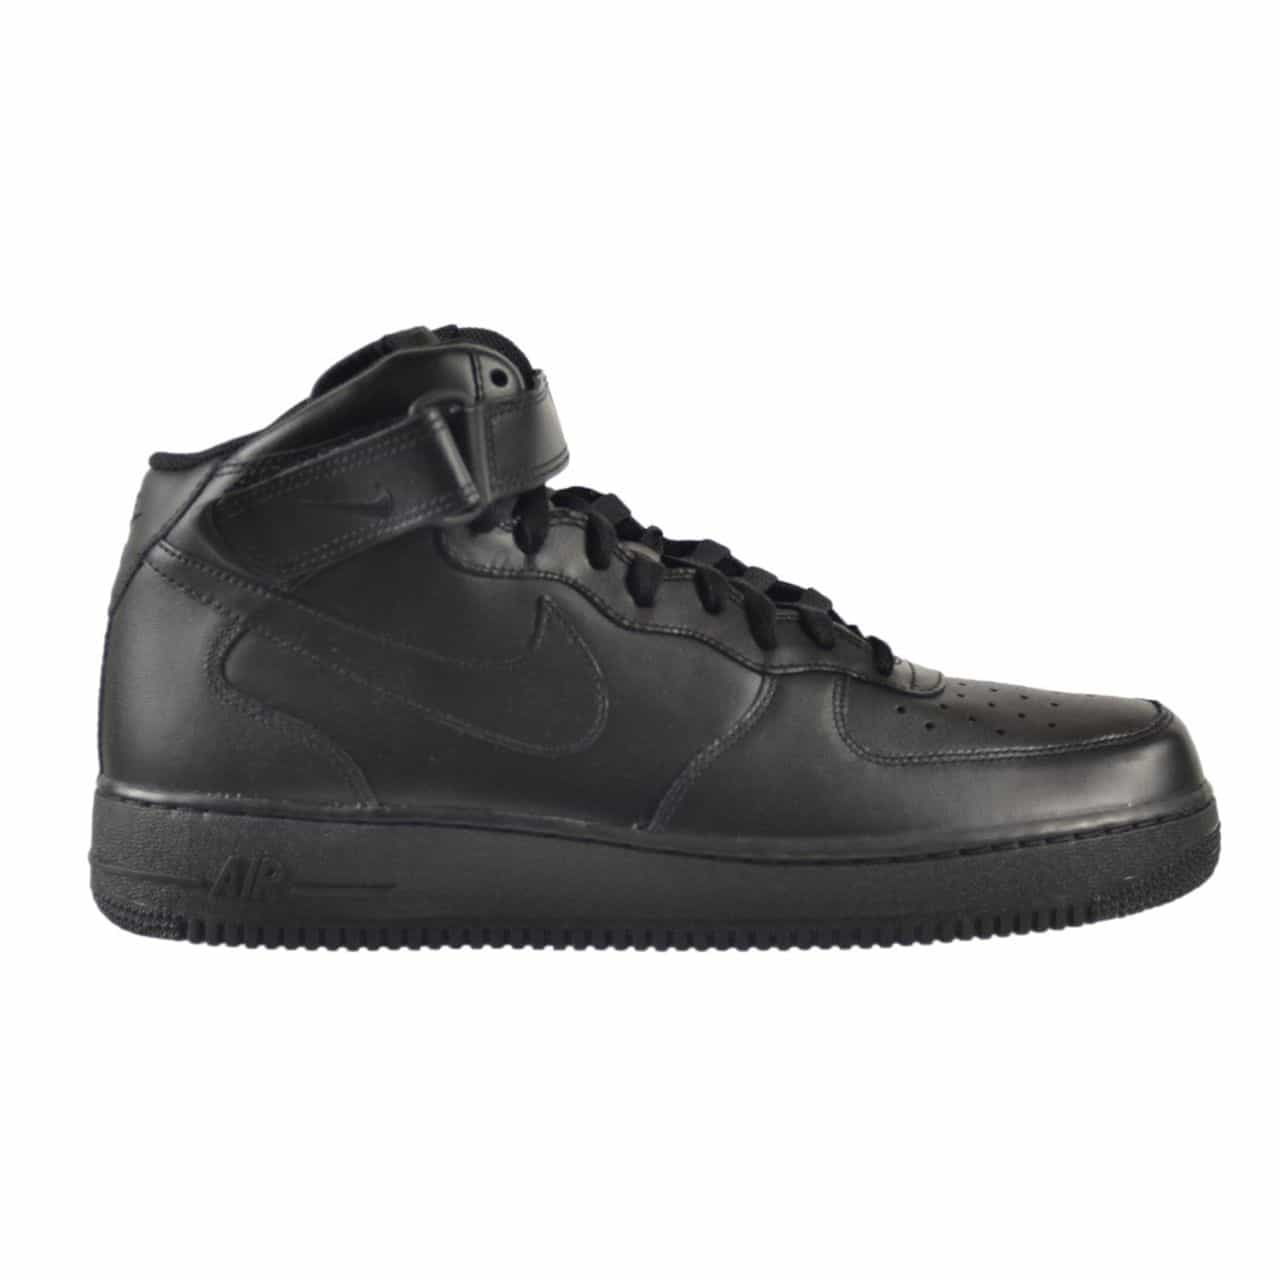 ADIDASI ORIGINALI NIKE AIR FORCE 1 MID '07 - 315123 001